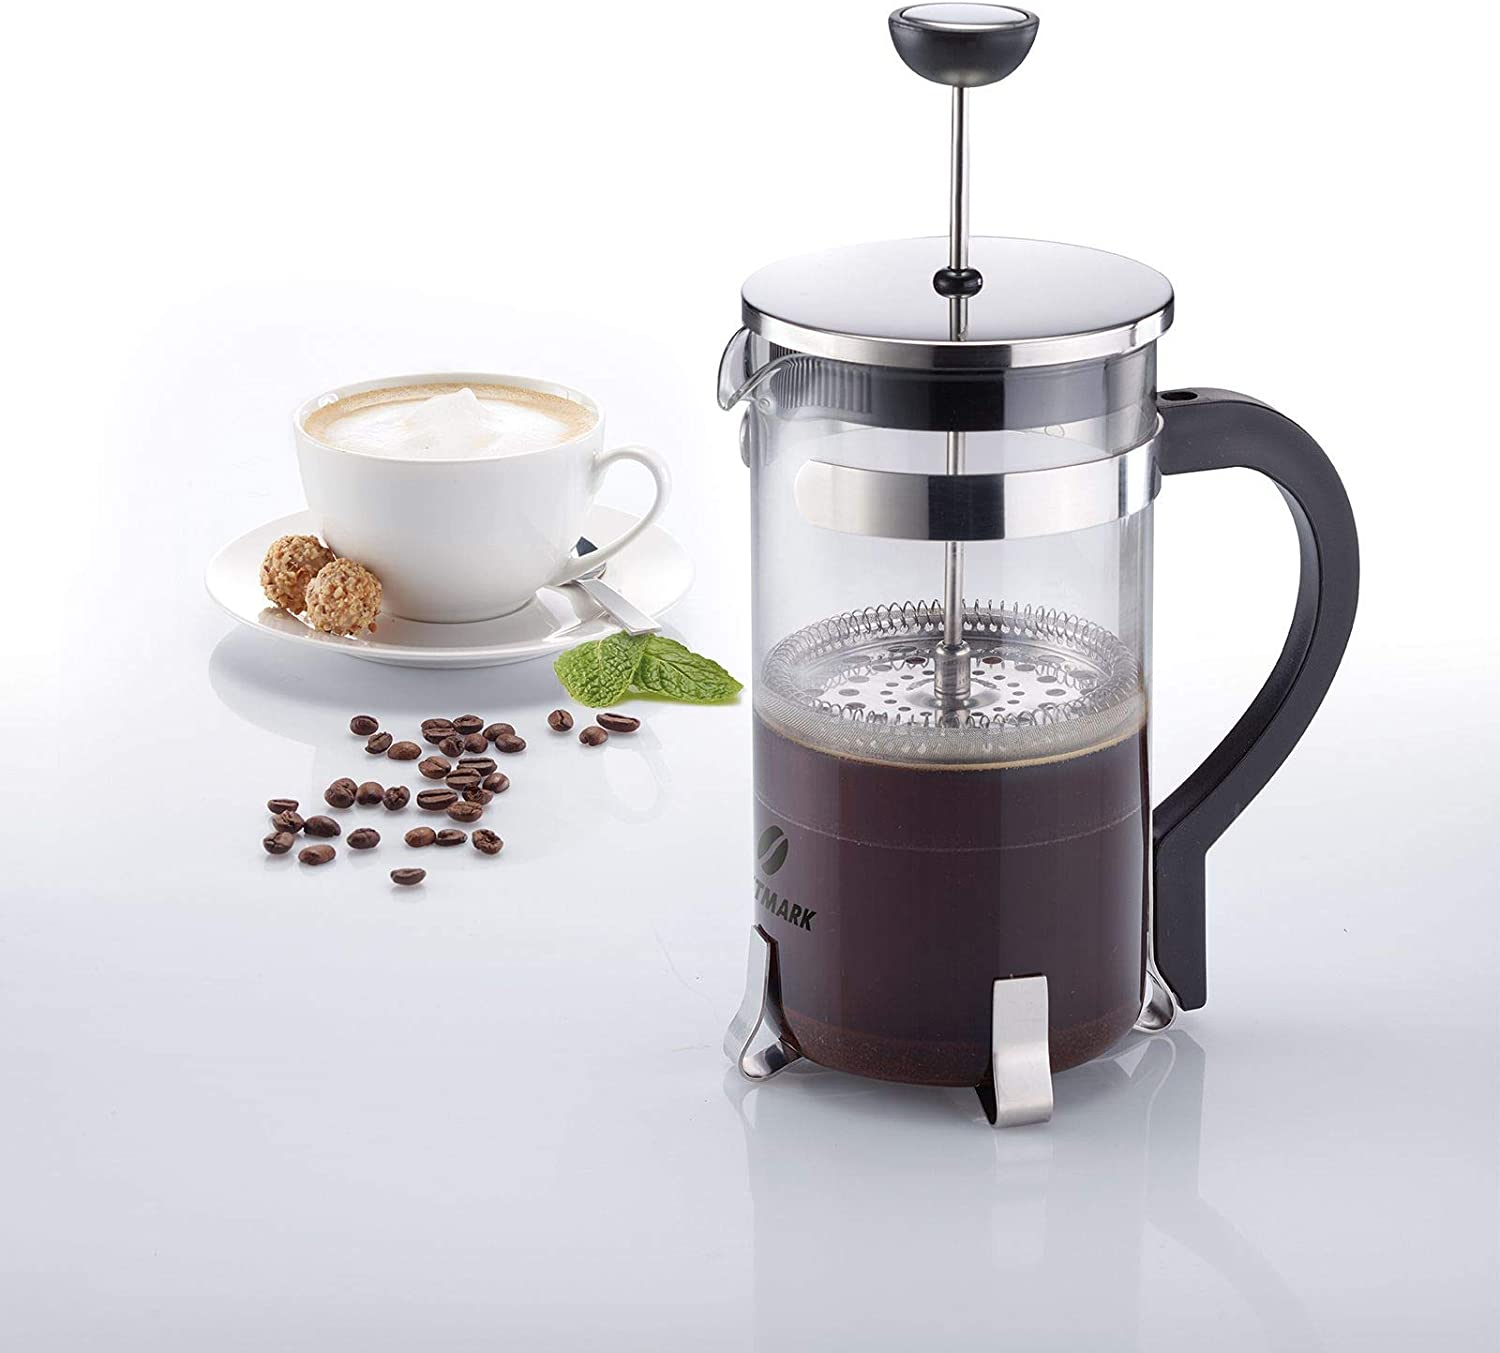 Westmark 24722260 French Press Brasilia - Cafetera (1000 ml, acero ...